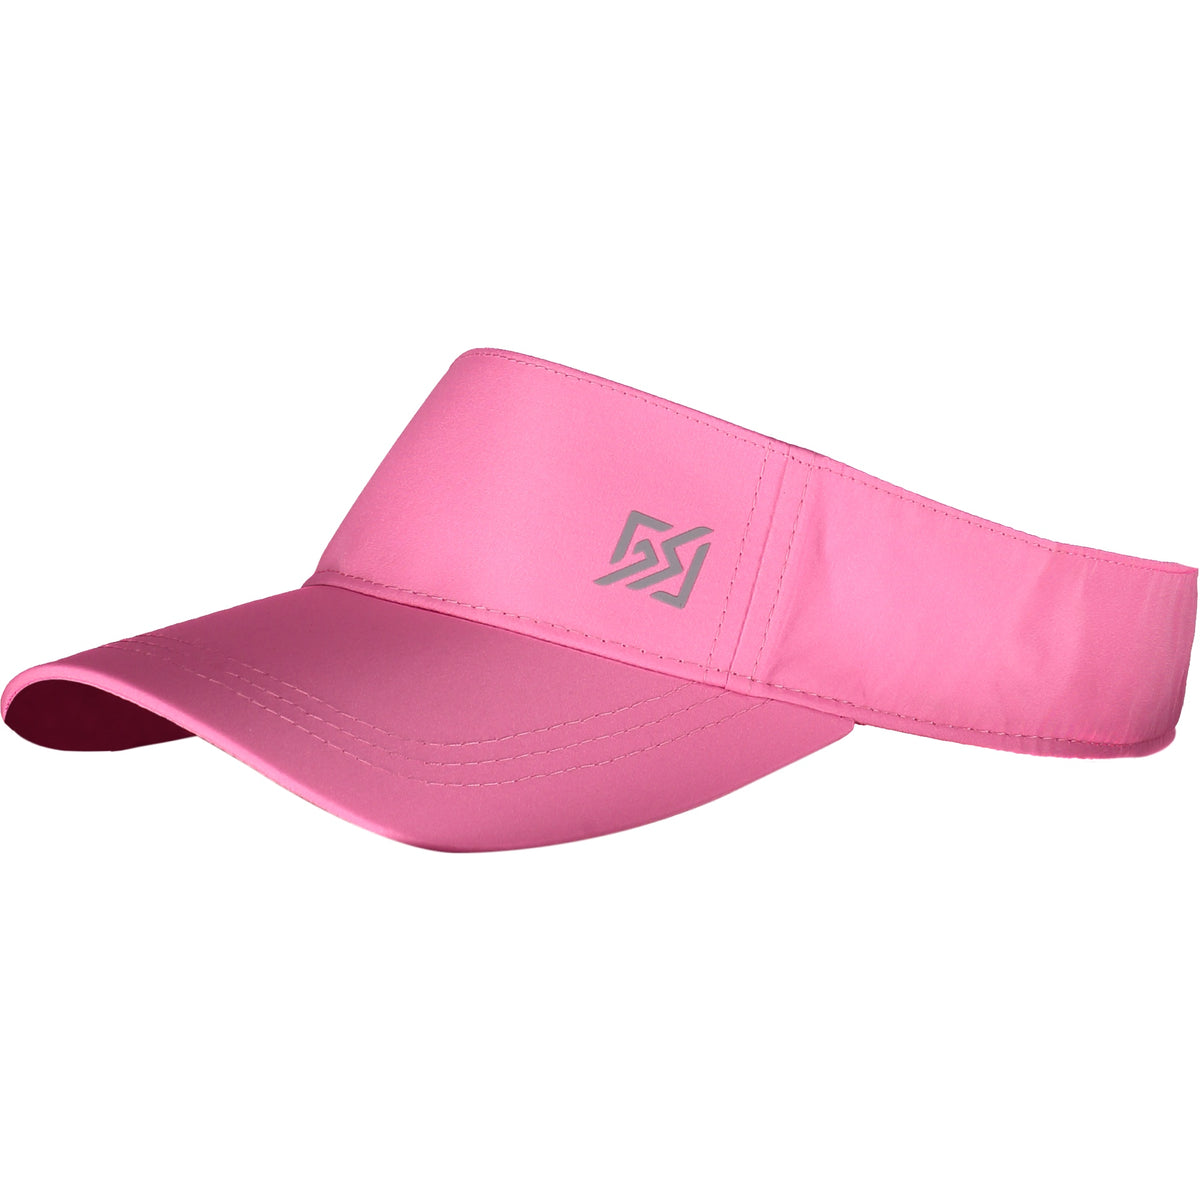 Catmandoo Yona Golf Visor in Electric Pink - The Golf Outfit c25ce6f19b7